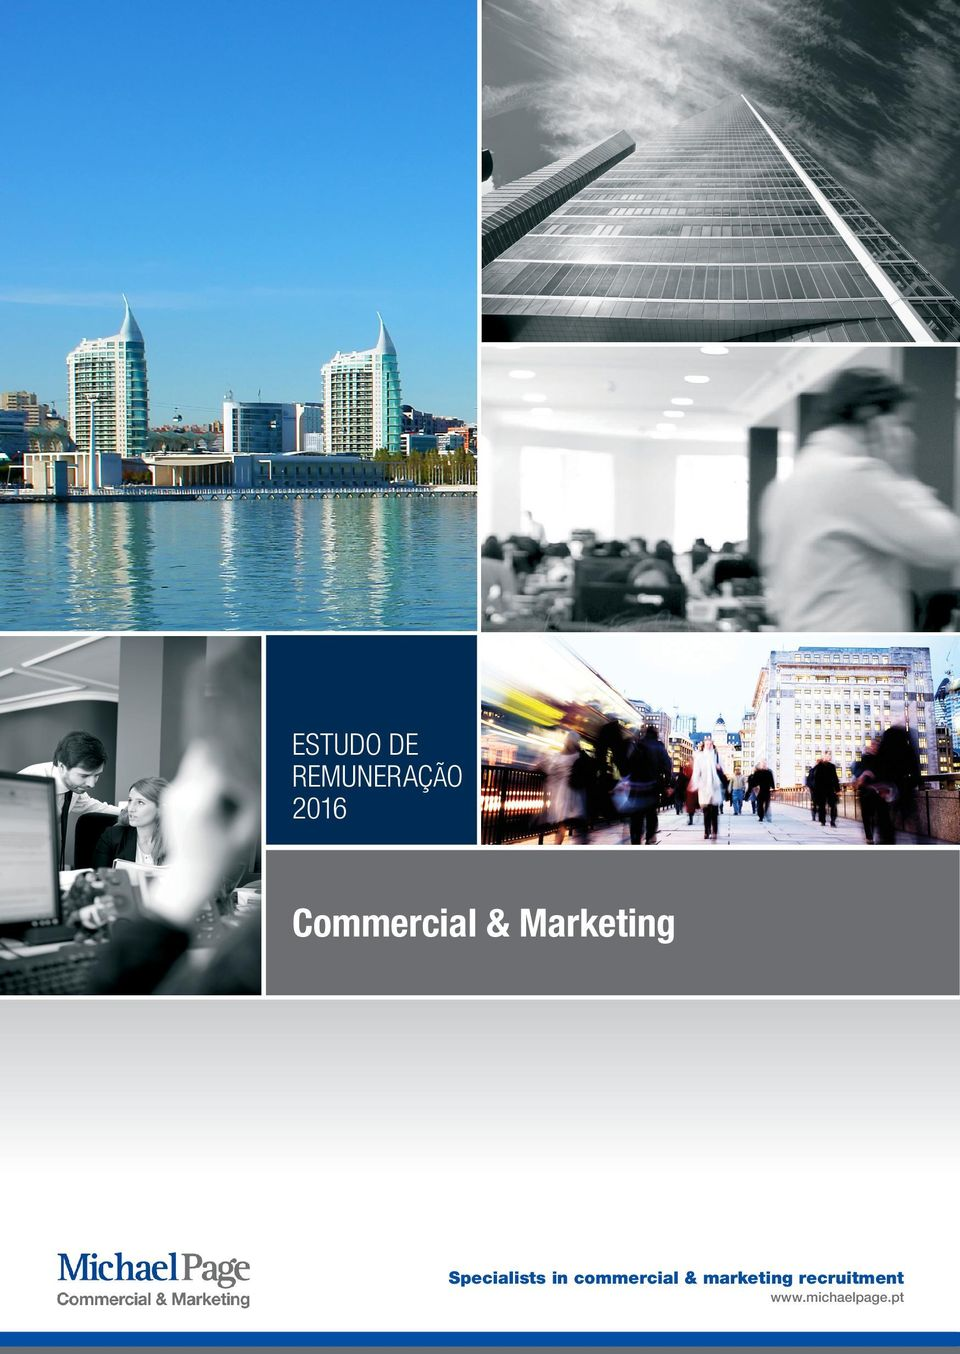 Marketing Sciences Specialists in